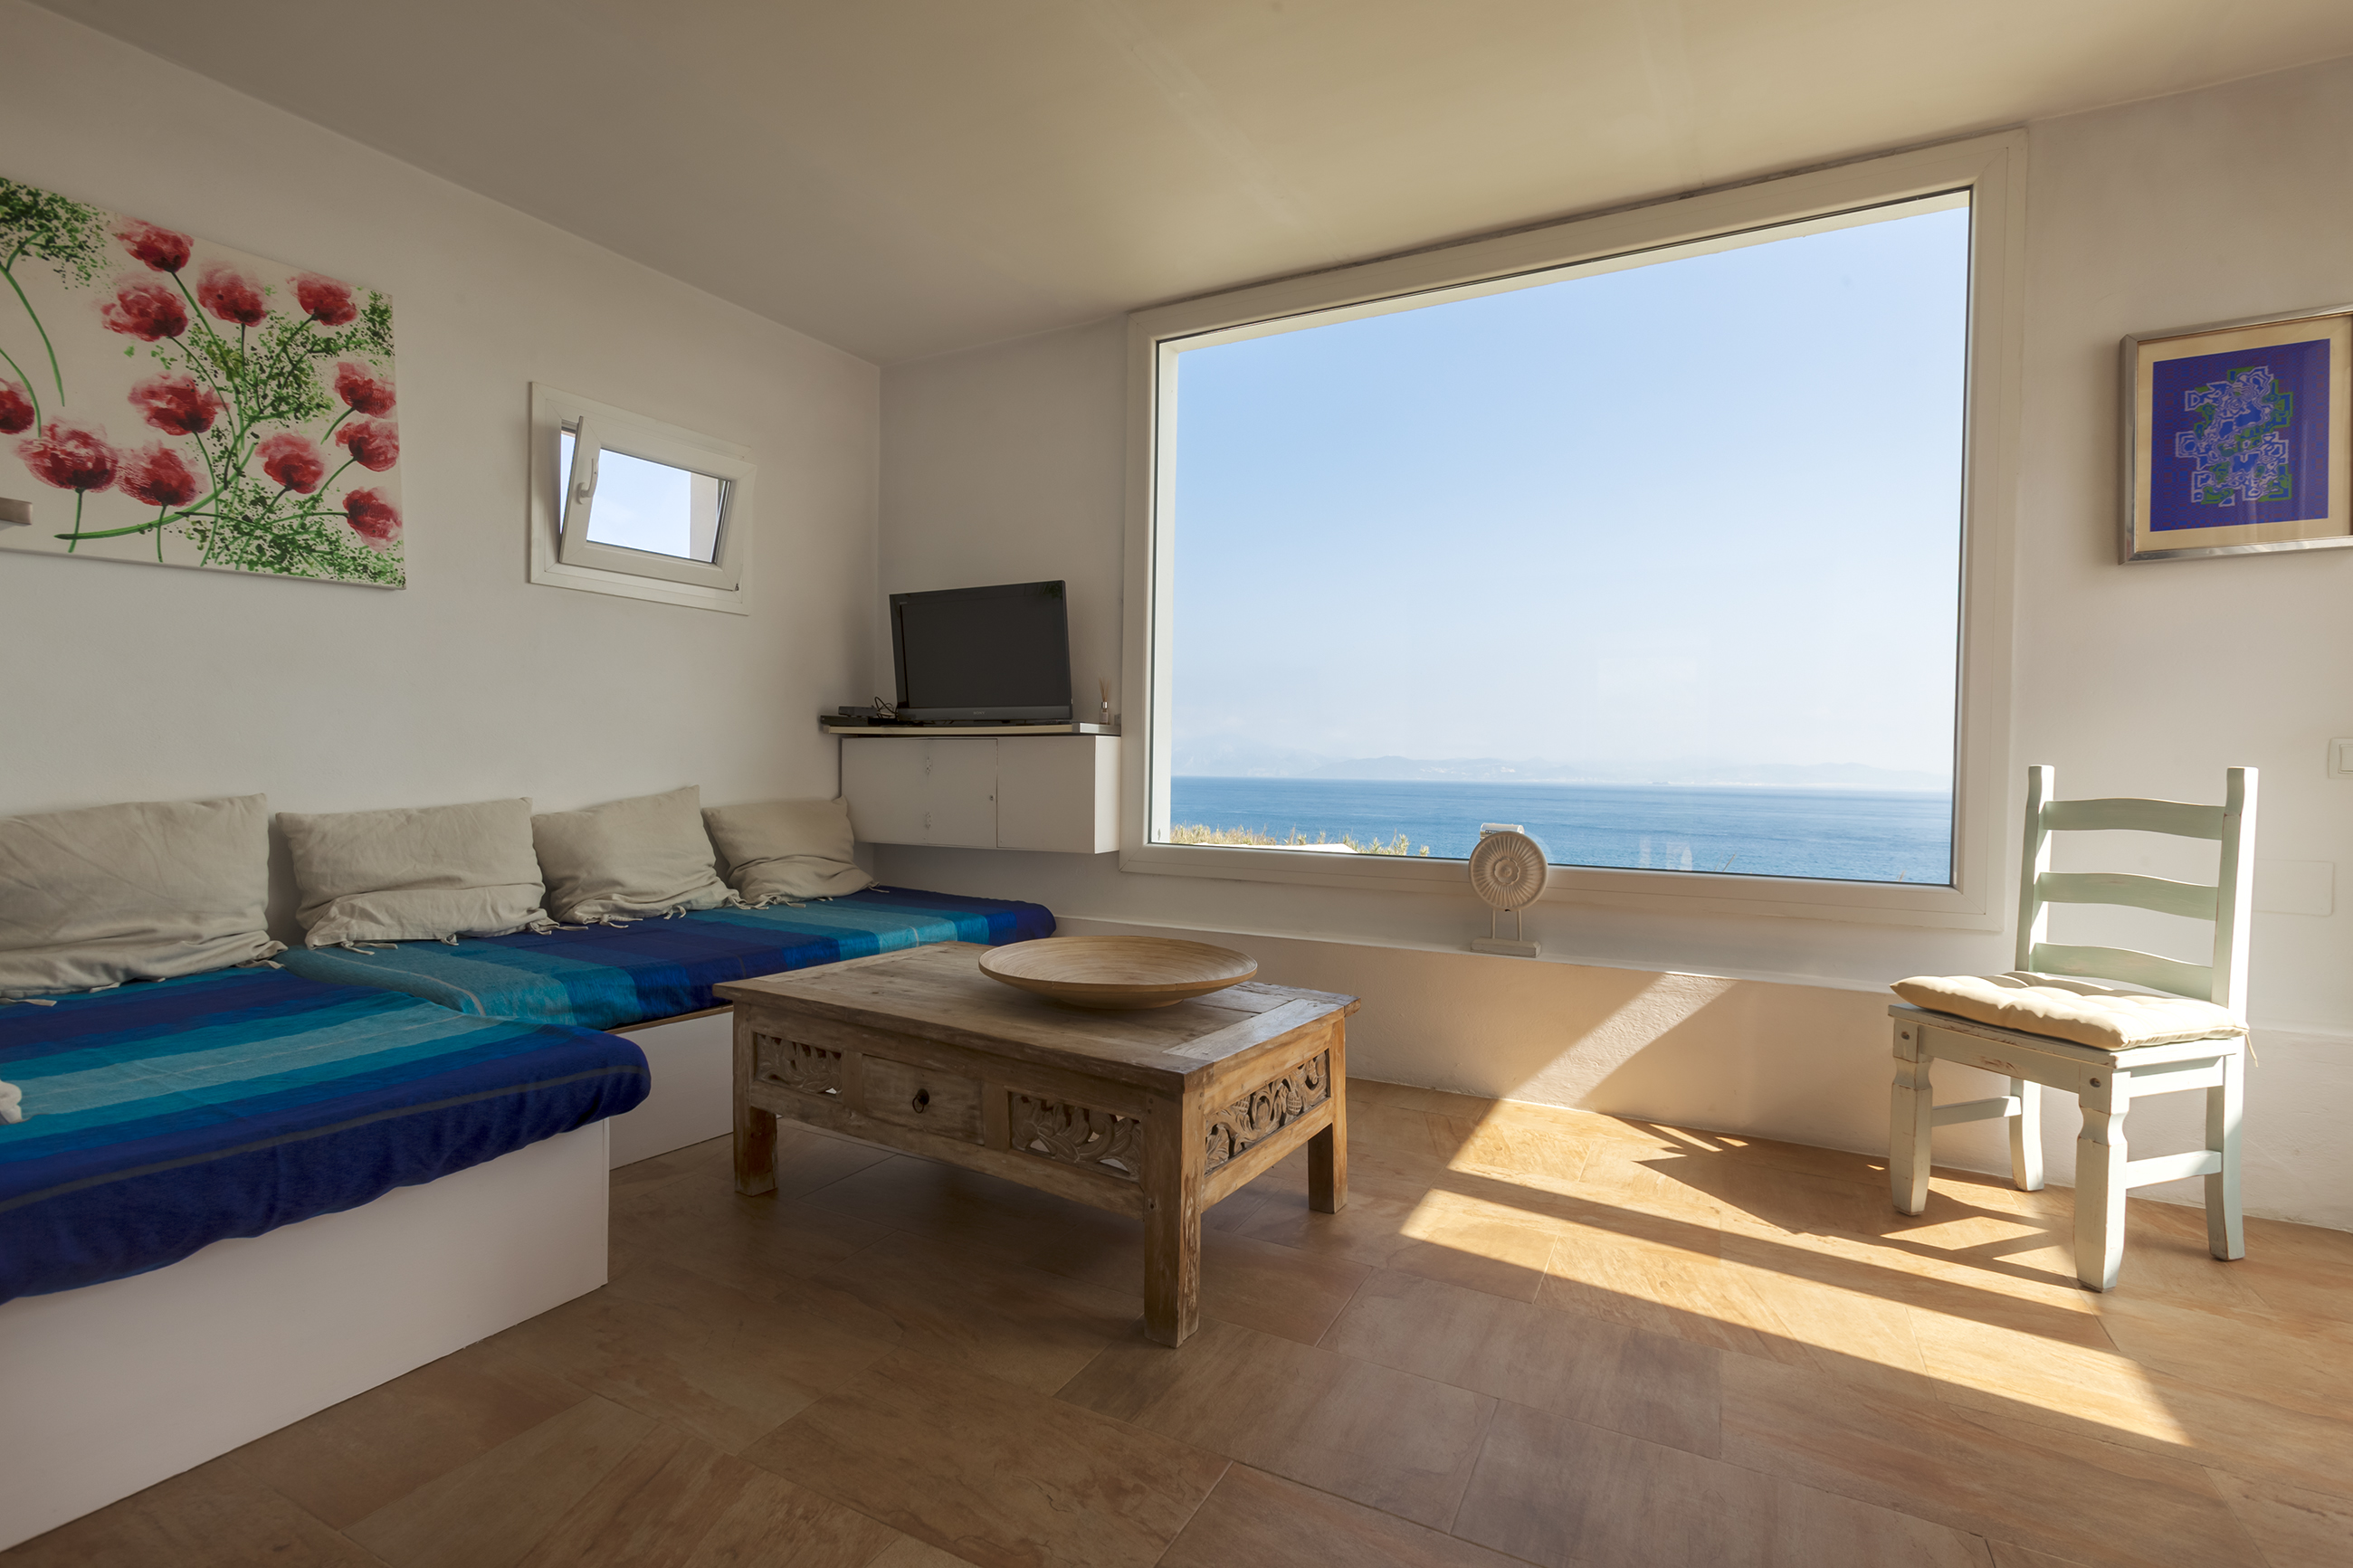 Sea views from the living room